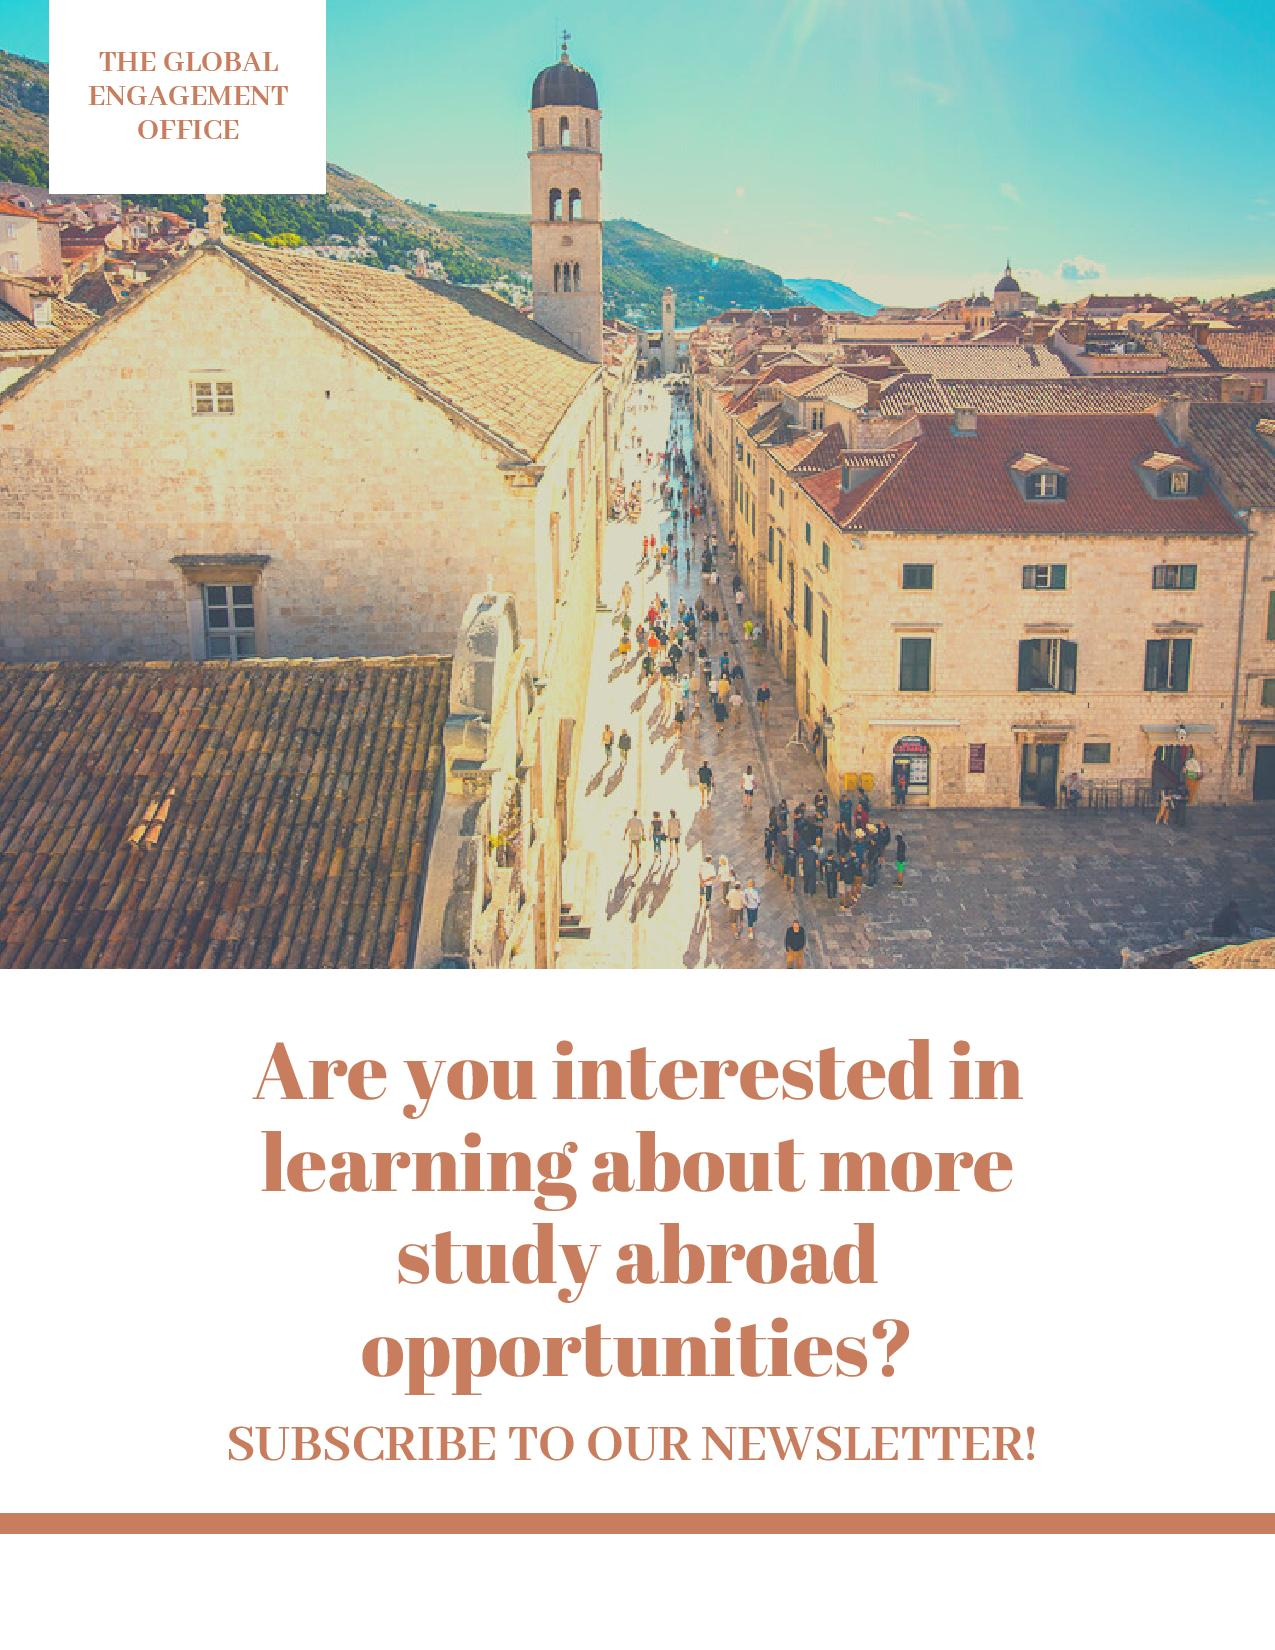 This flyer asks, are you interested in learning more about study abroad opportunities? It so, you should subscribe to our newsletter! At the bottom of the flyer, the same link found in the description is provided.